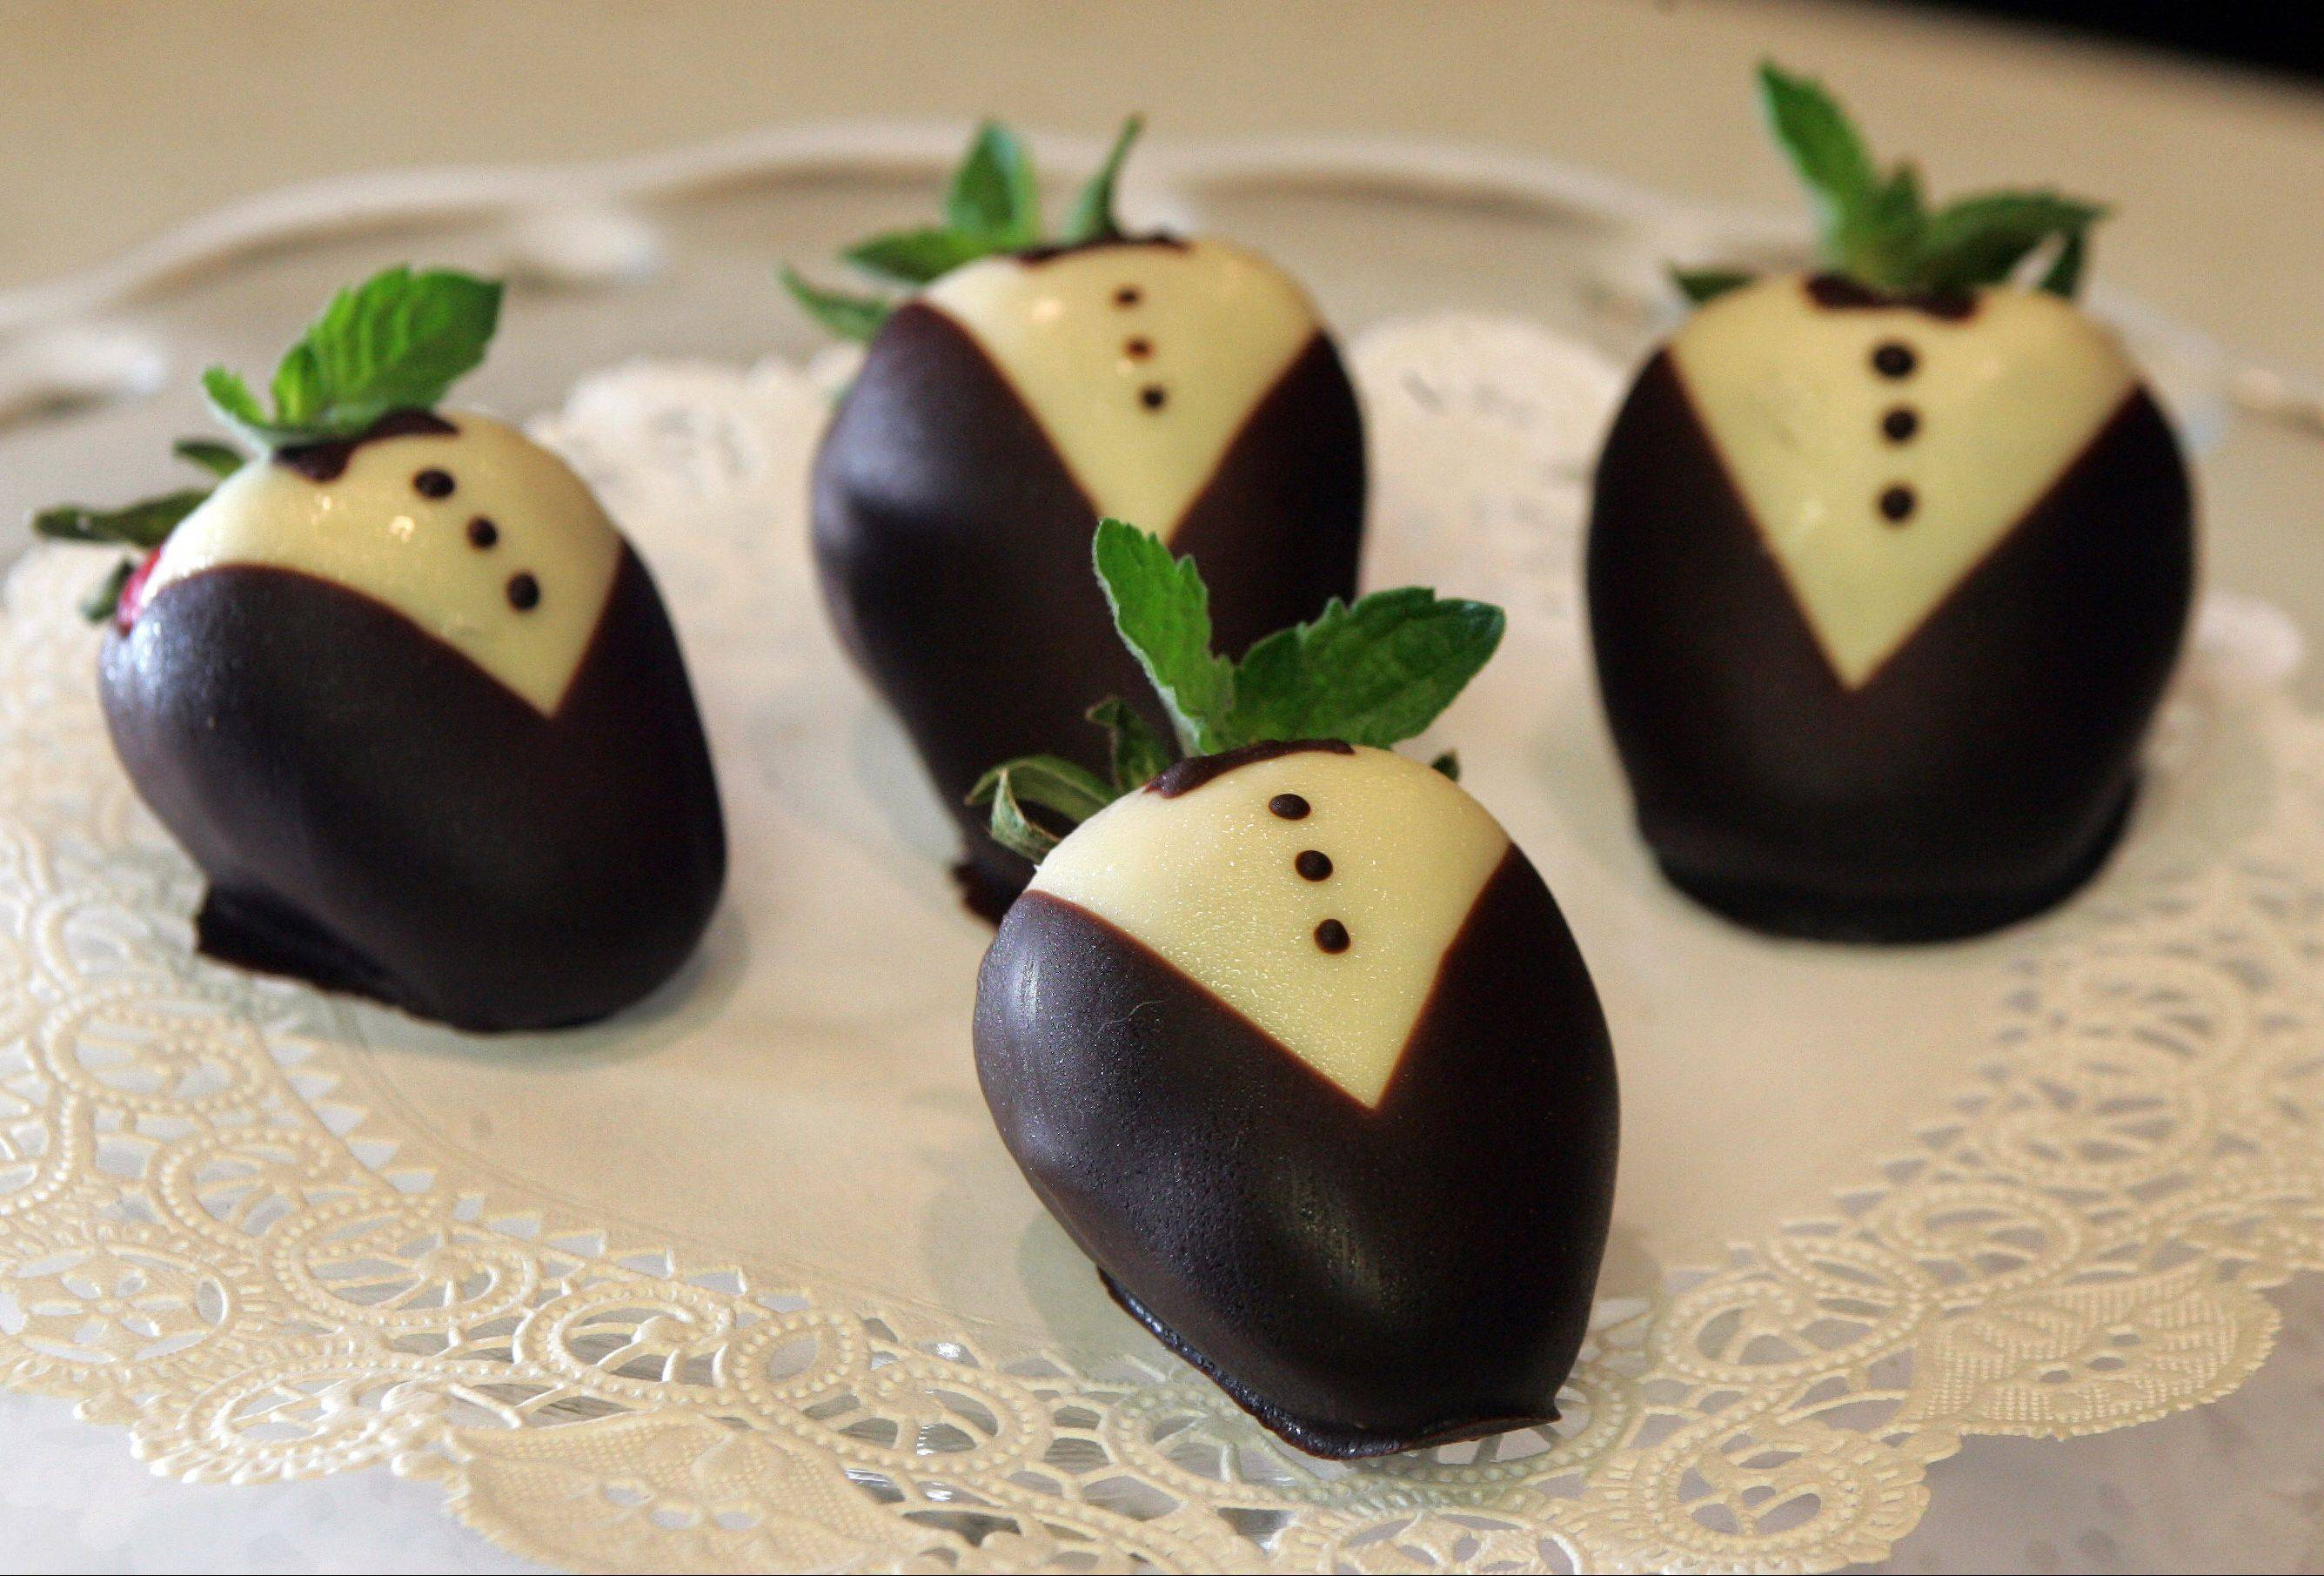 Tuxedo strawberries are an elegant, fresh-fruit treat for summer entertaining. They look fussy, yet once you melt the chocolate they are easy to make.